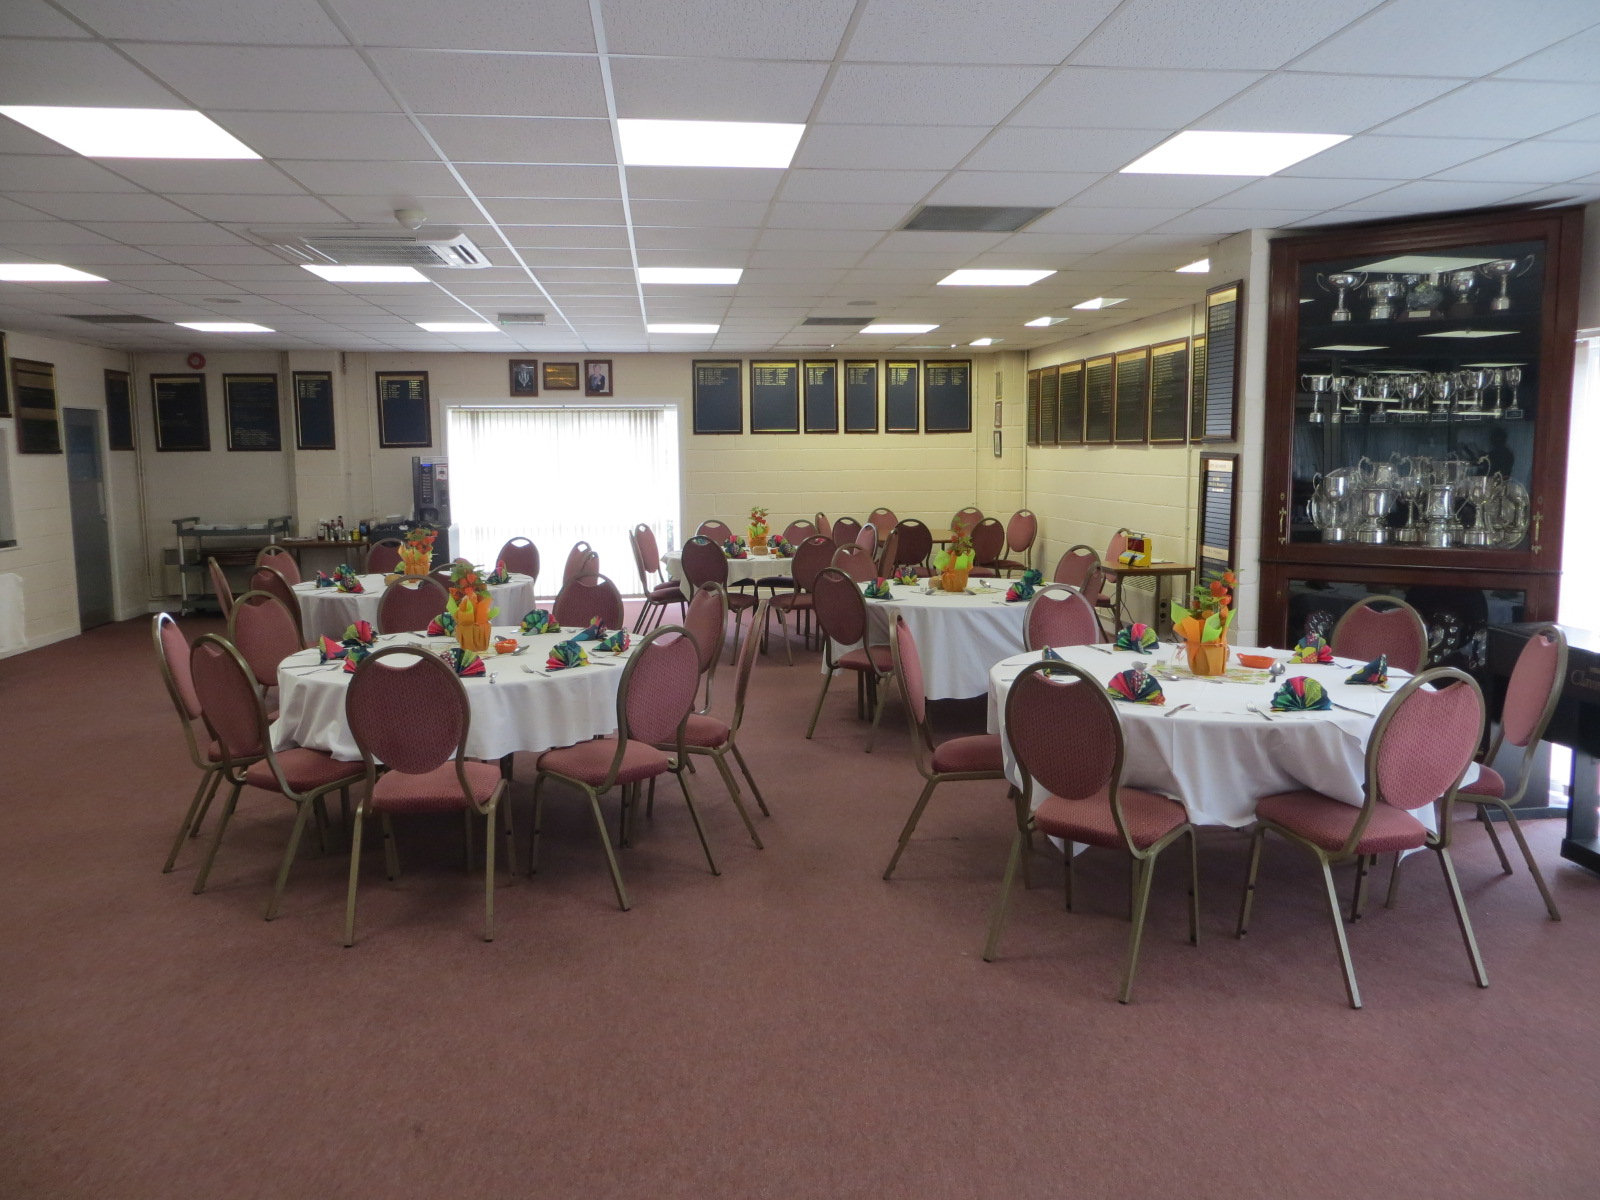 Restaurant at the North Wilts Bowls Club